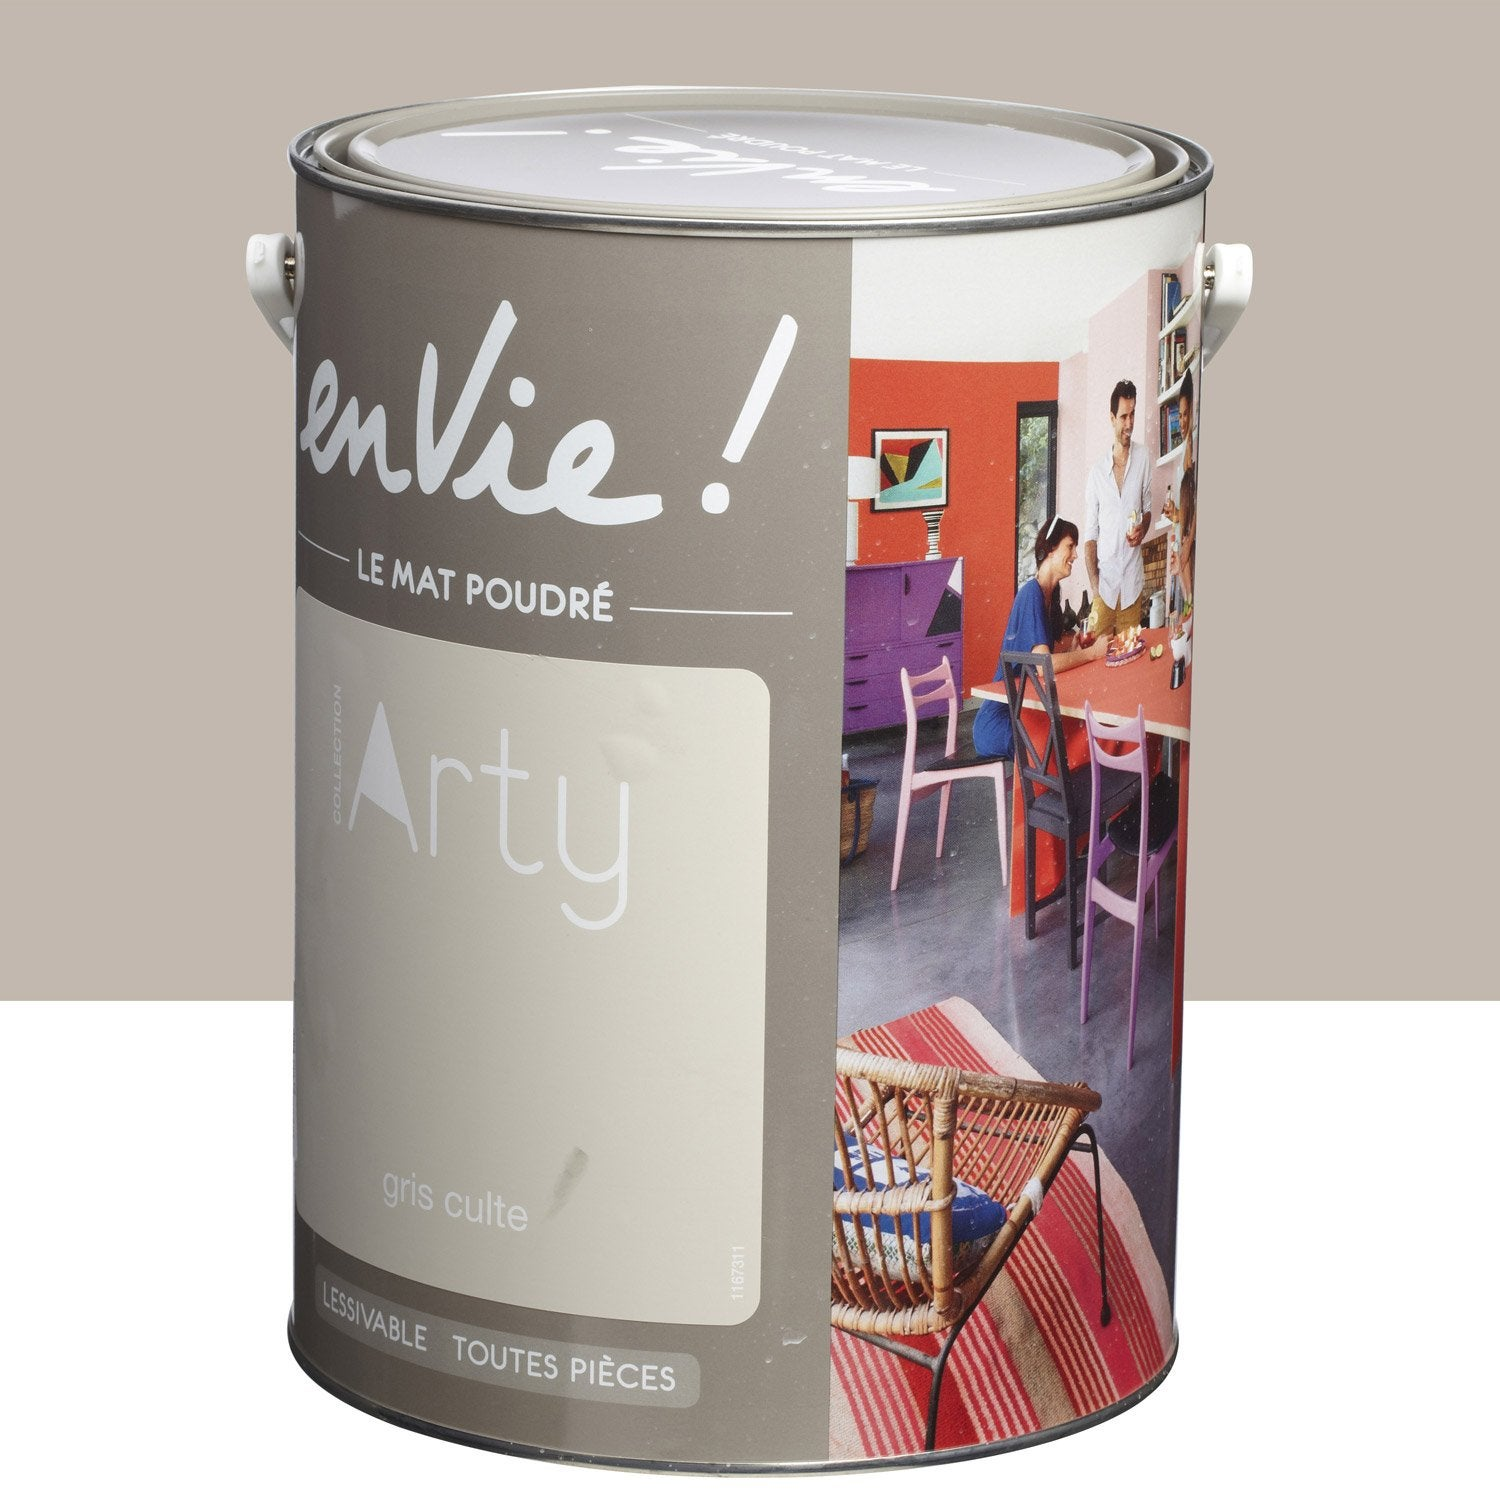 Peinture gris culte luxens envie collection arty 5 l leroy merlin - Peinture envie leroy merlin ...